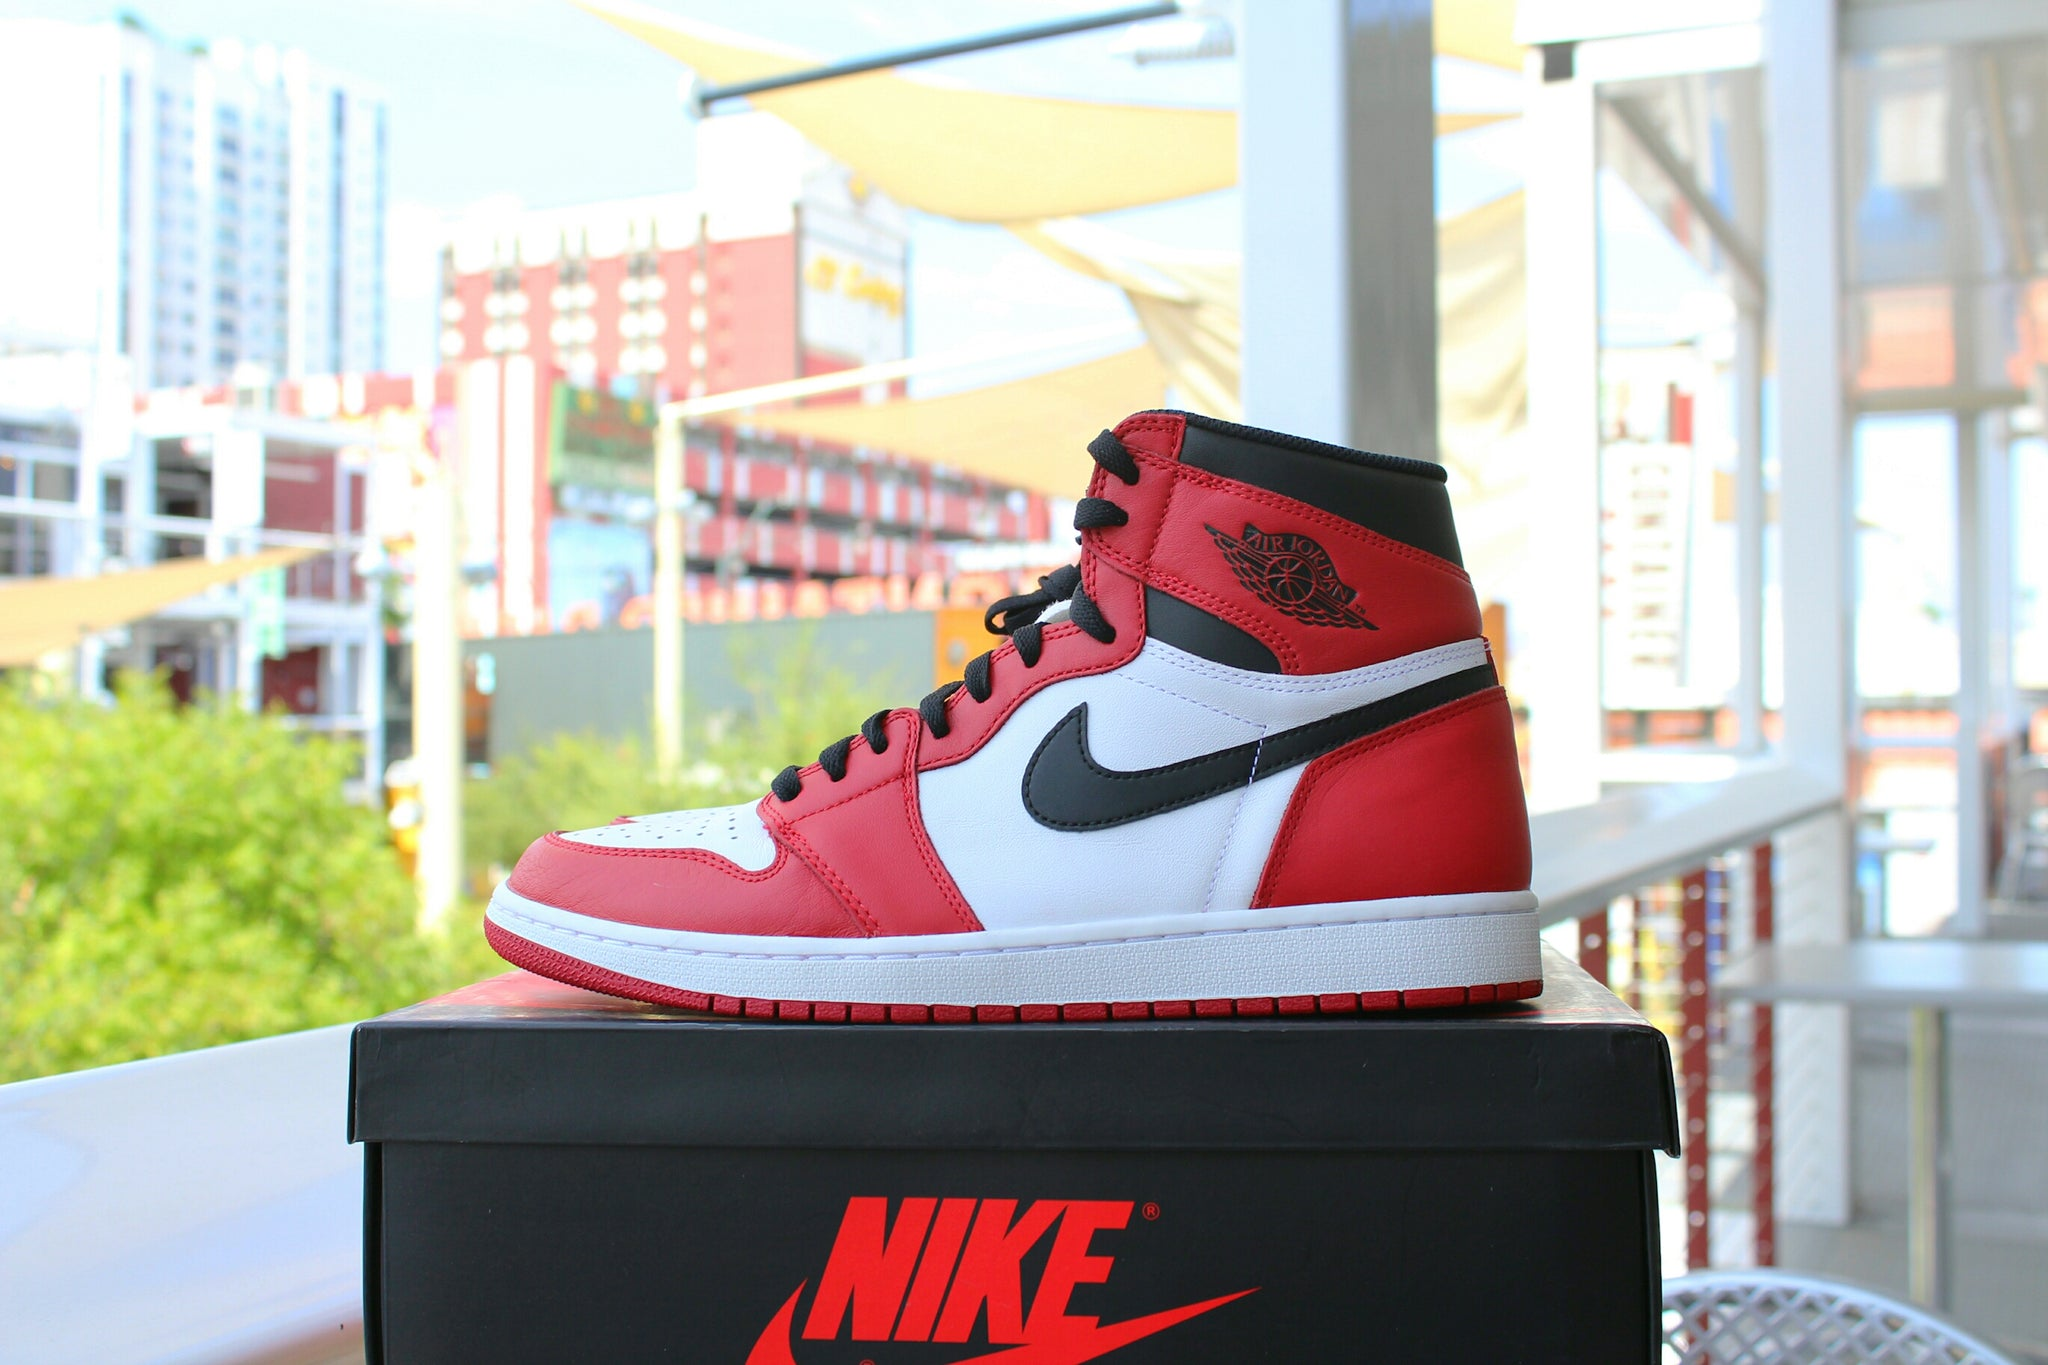 Air Jordan 1 Retro OG High (Chicago)